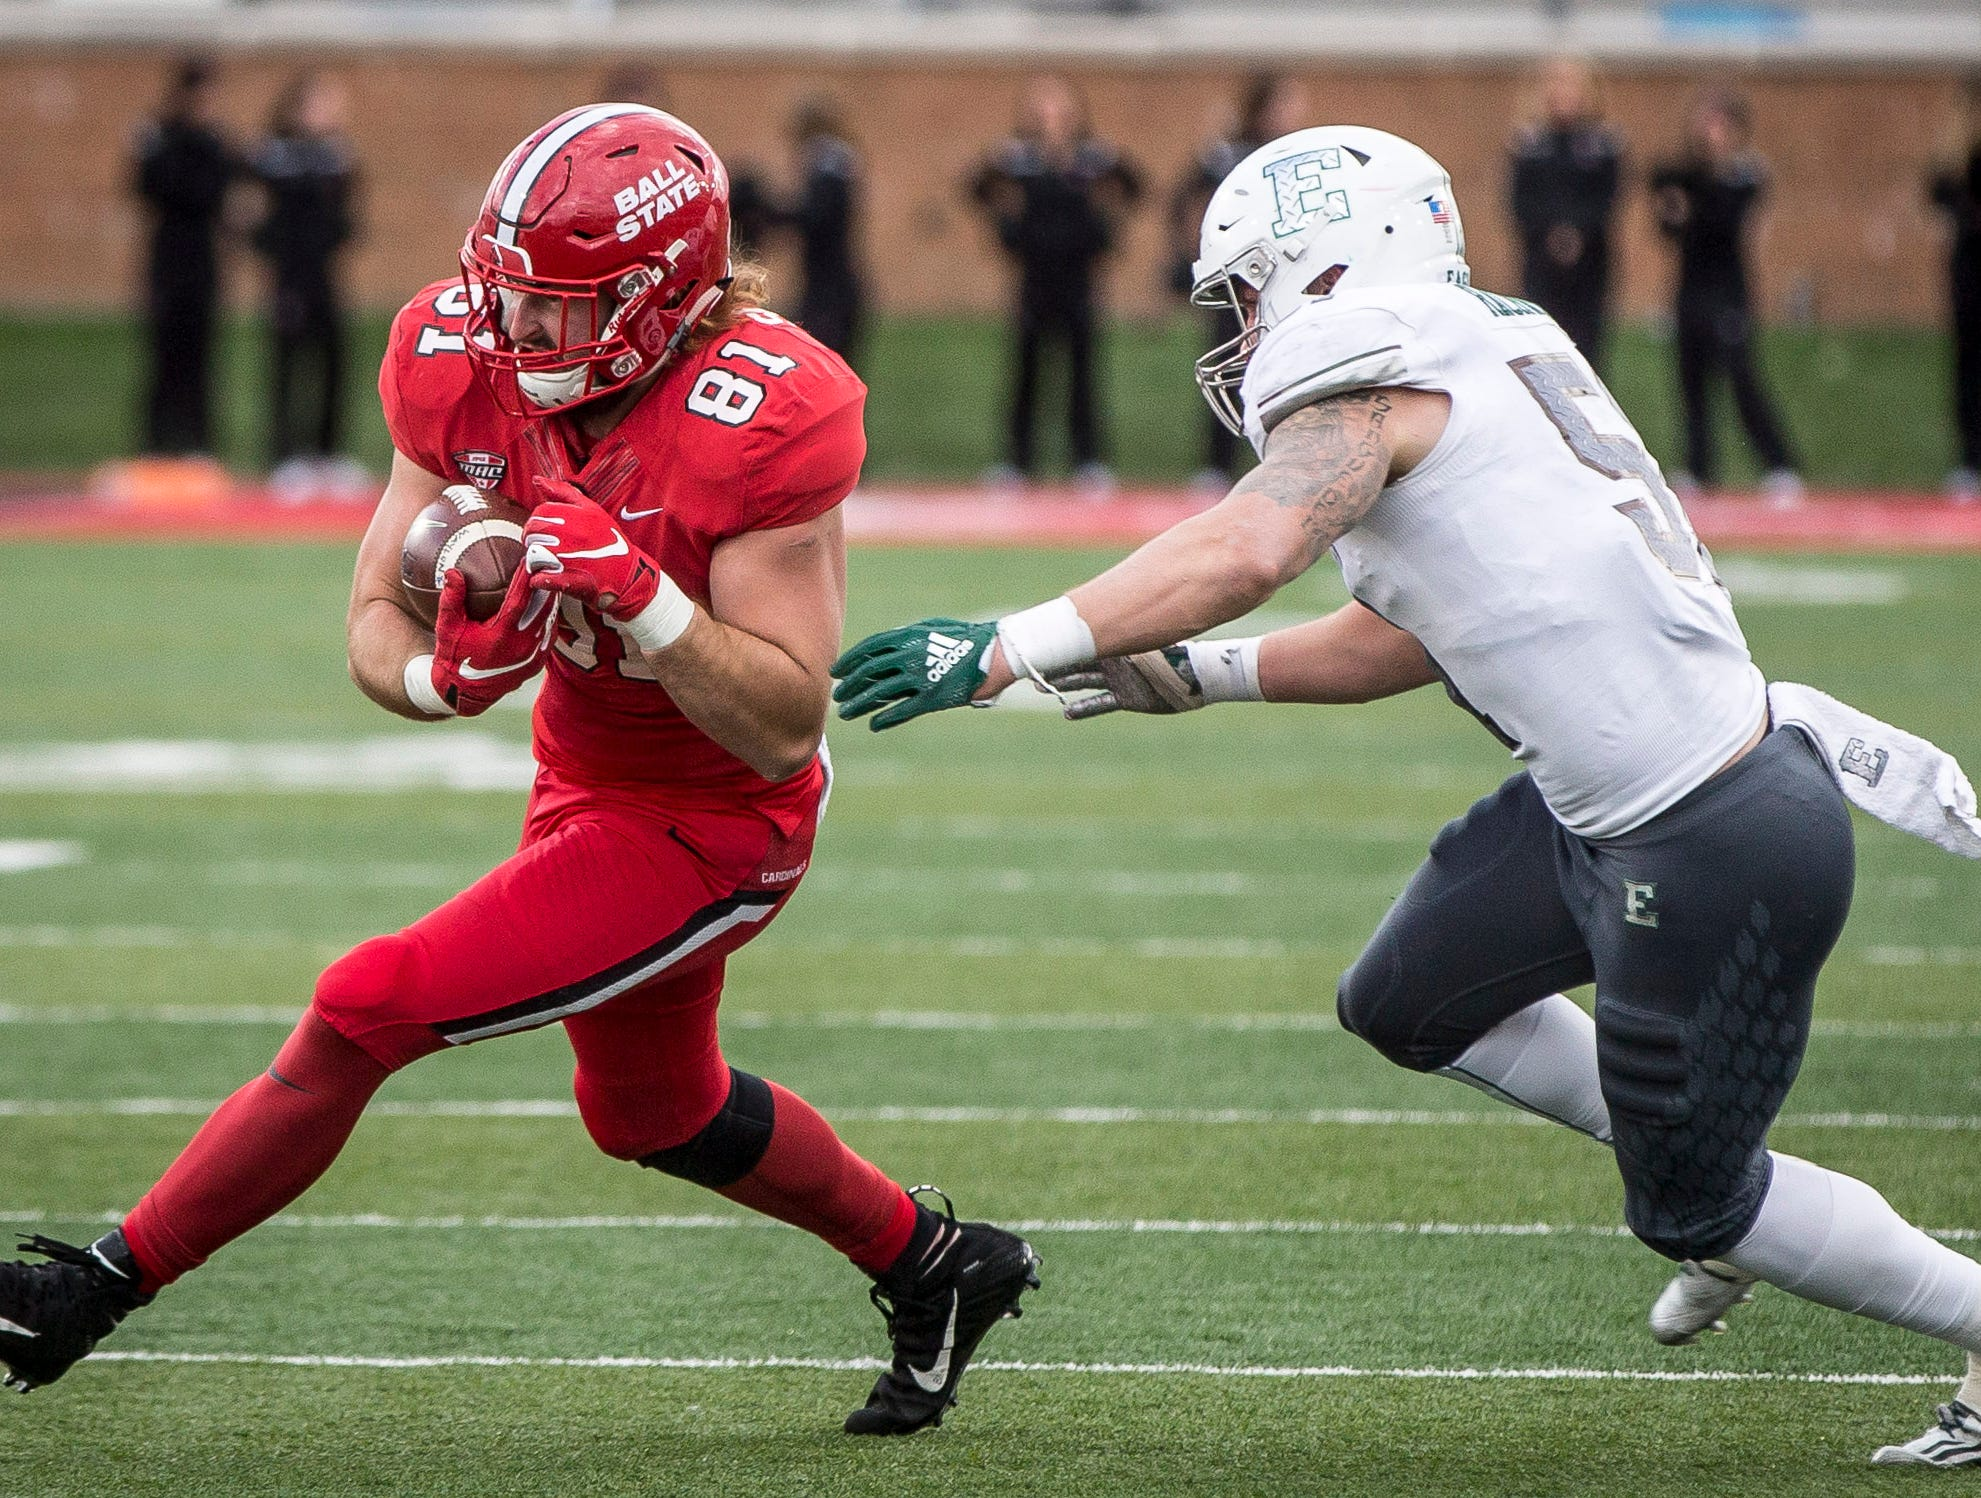 Ball State's Kyle Schrank attempts to make it past the defense during Saturday's game at Scheumann Stadium. Eastern Michigan won with a final score of 42-20.